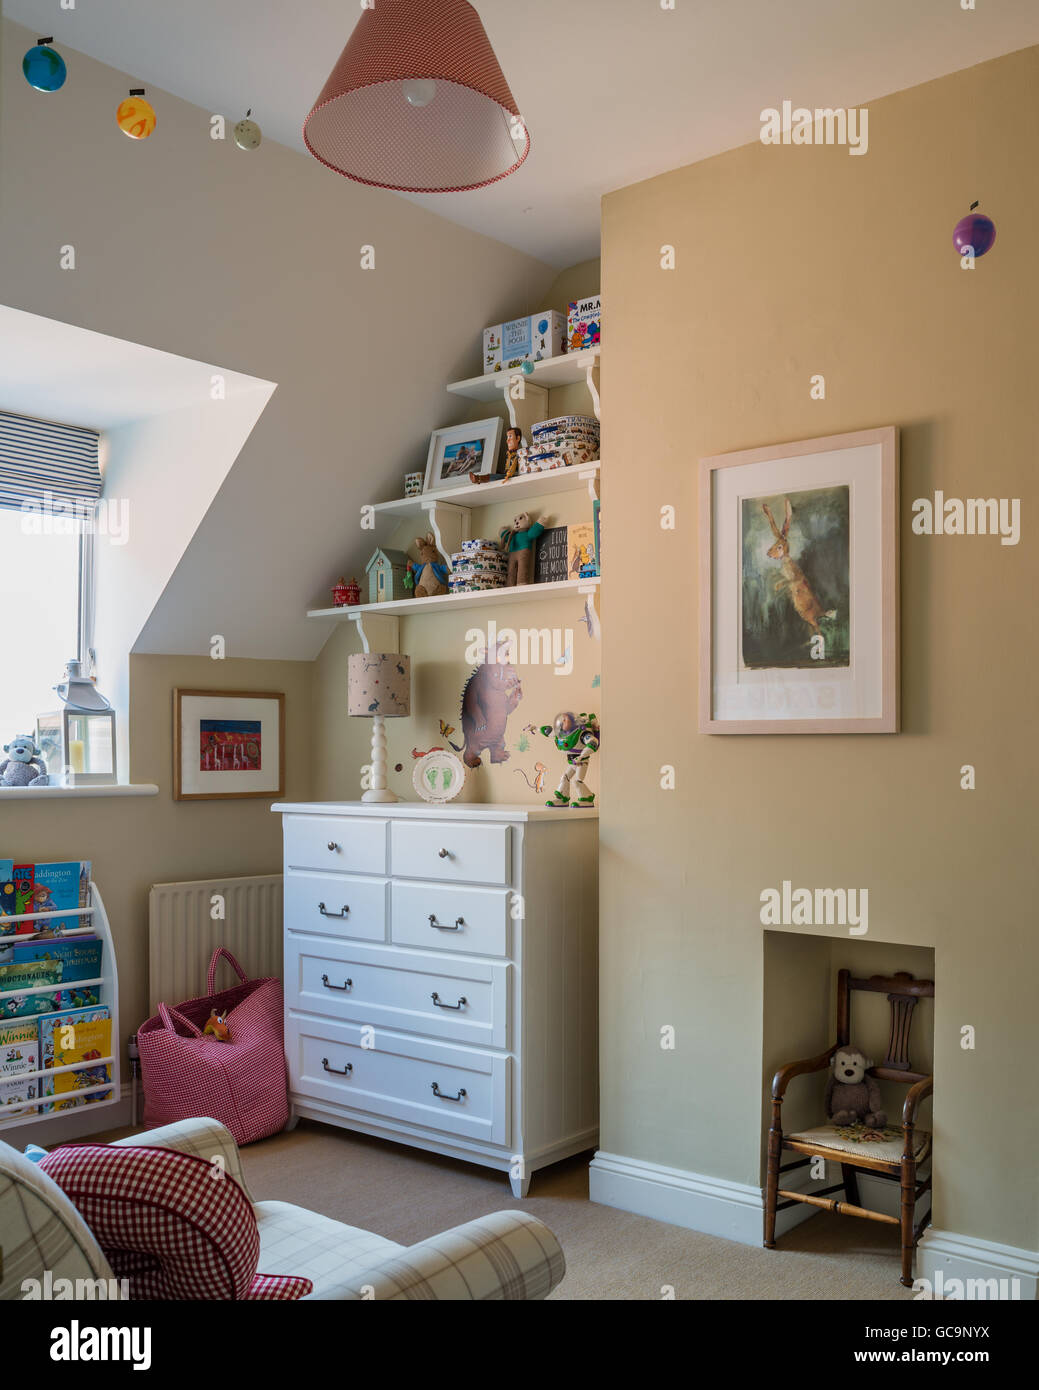 Farrow And Ball Mizzle.Childs Bedroom With Walls Painted In Mizzle By Farrow Ball